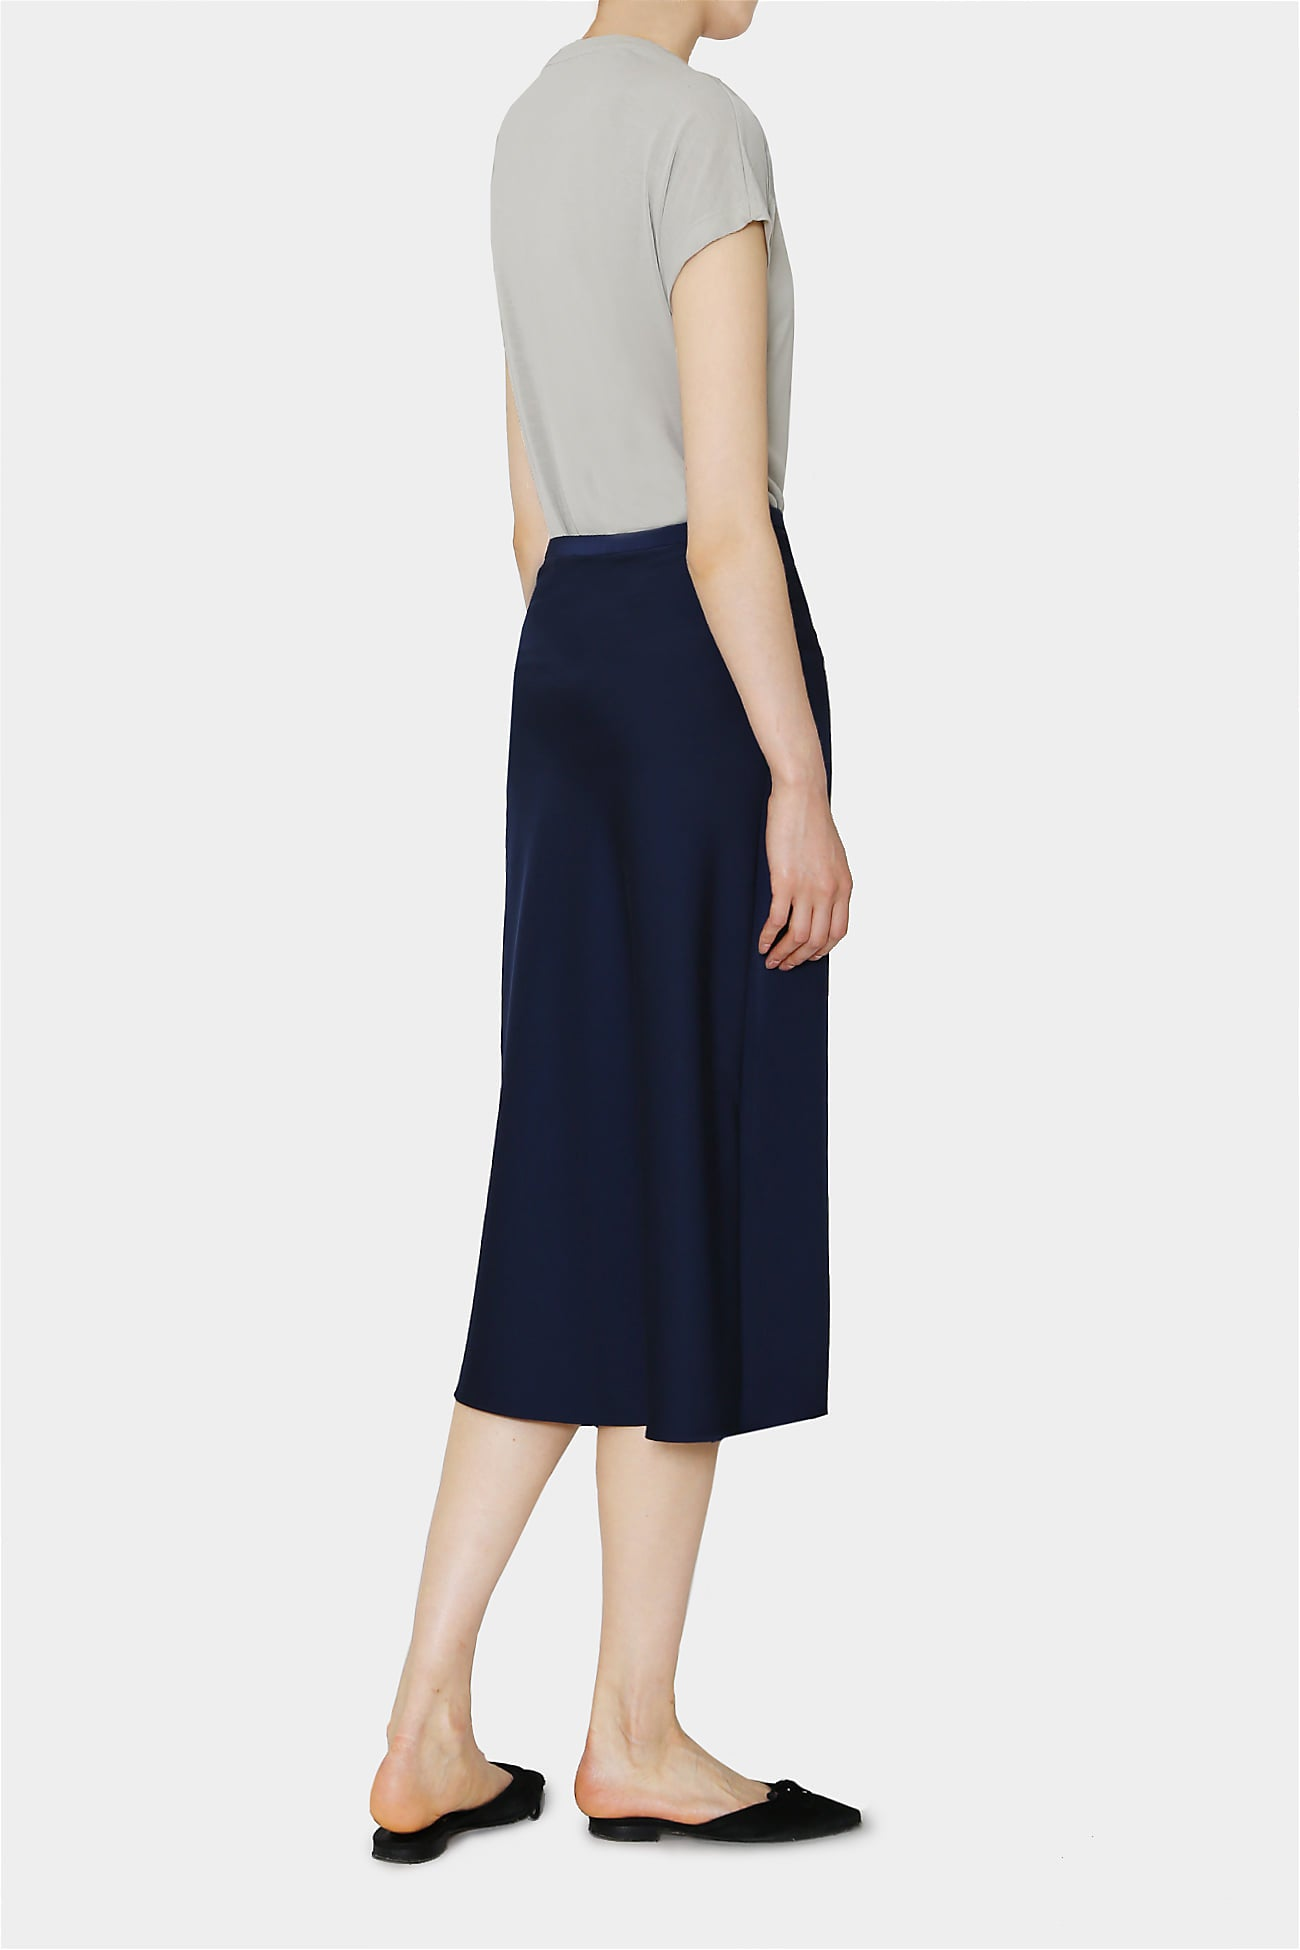 NAVY DEMI SATIN SKIRT